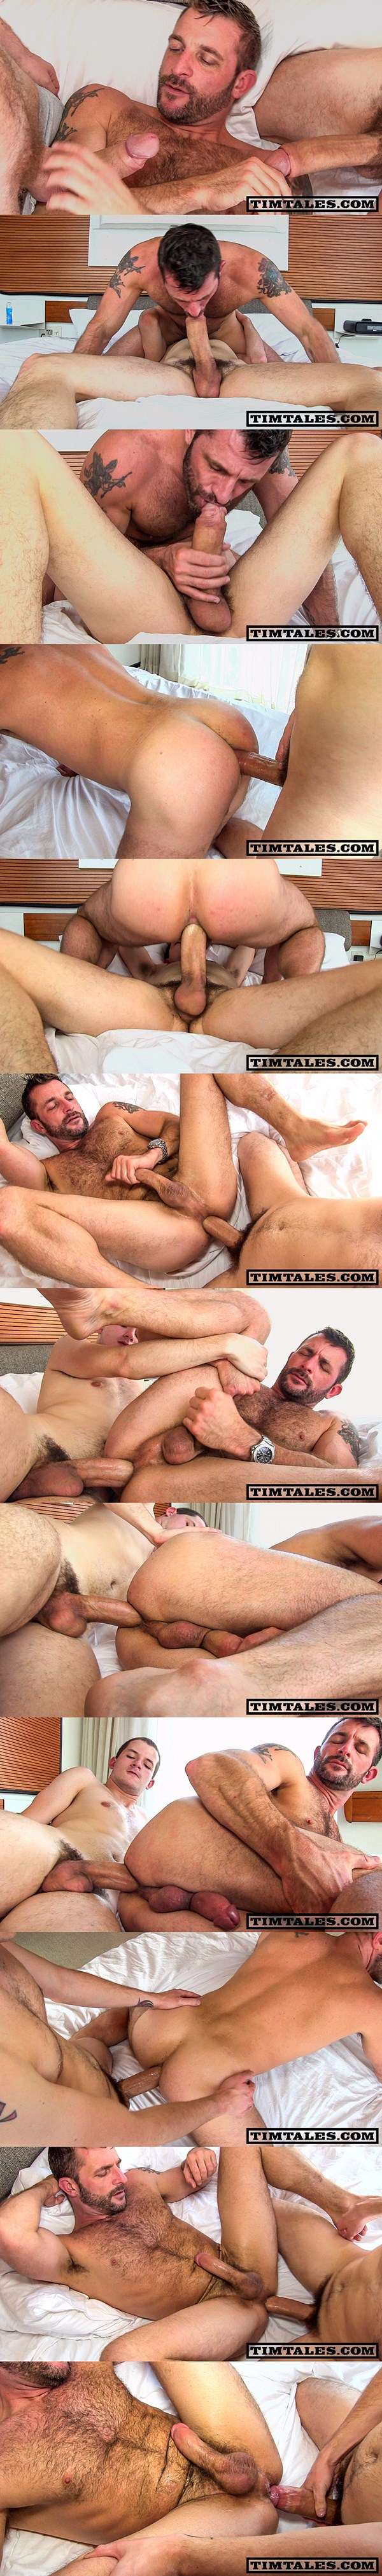 Timtales - Big-cocked twink Devin Moss barebacks masculine hairy daddy Morgan Black before he fucks the cum out of Morgan and creampies him 02